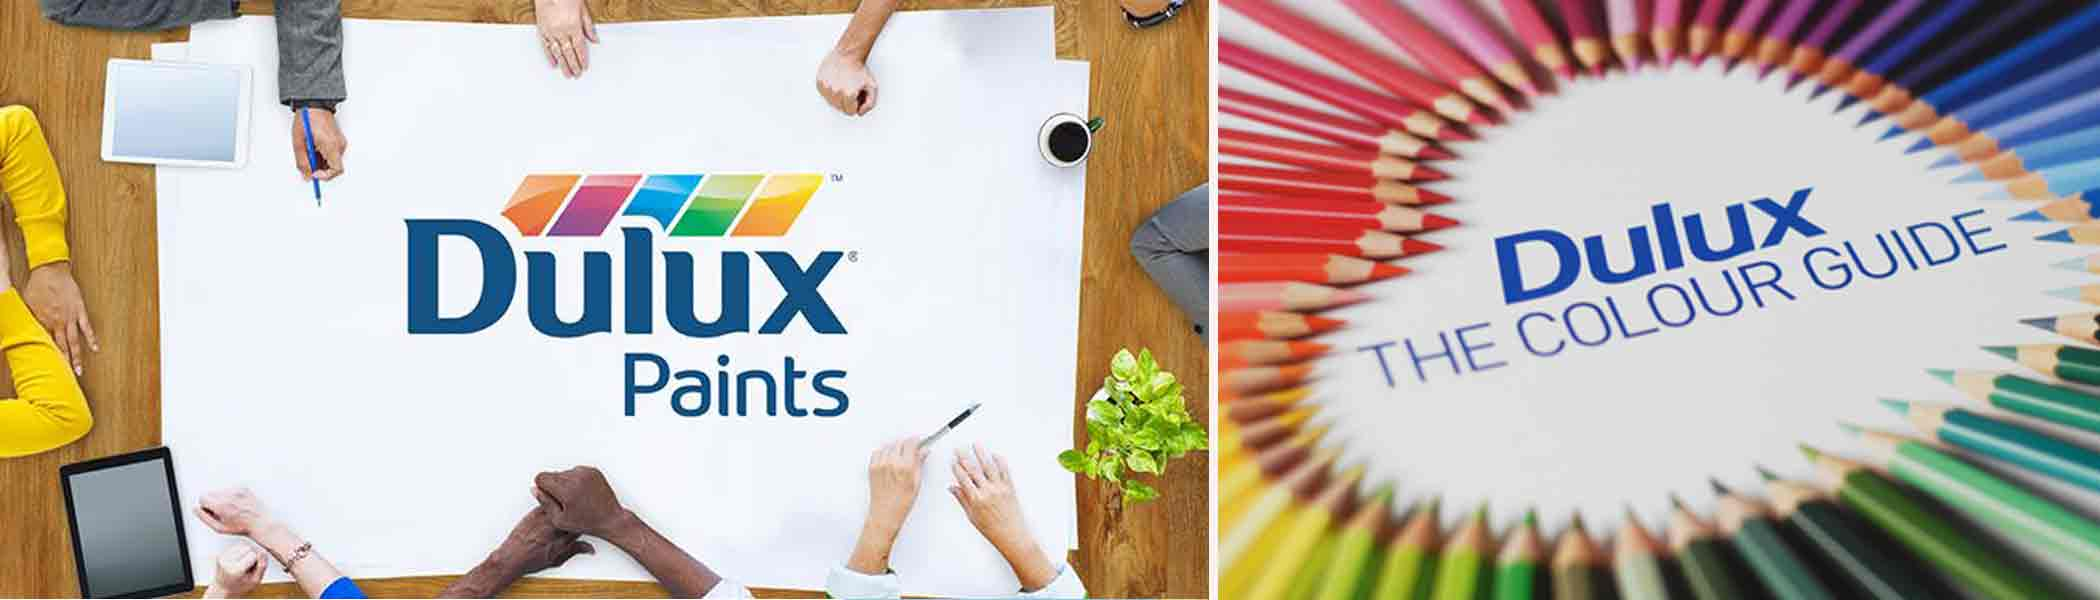 Dulux Paints Woodworks Unlimited In Seychelles Painting And